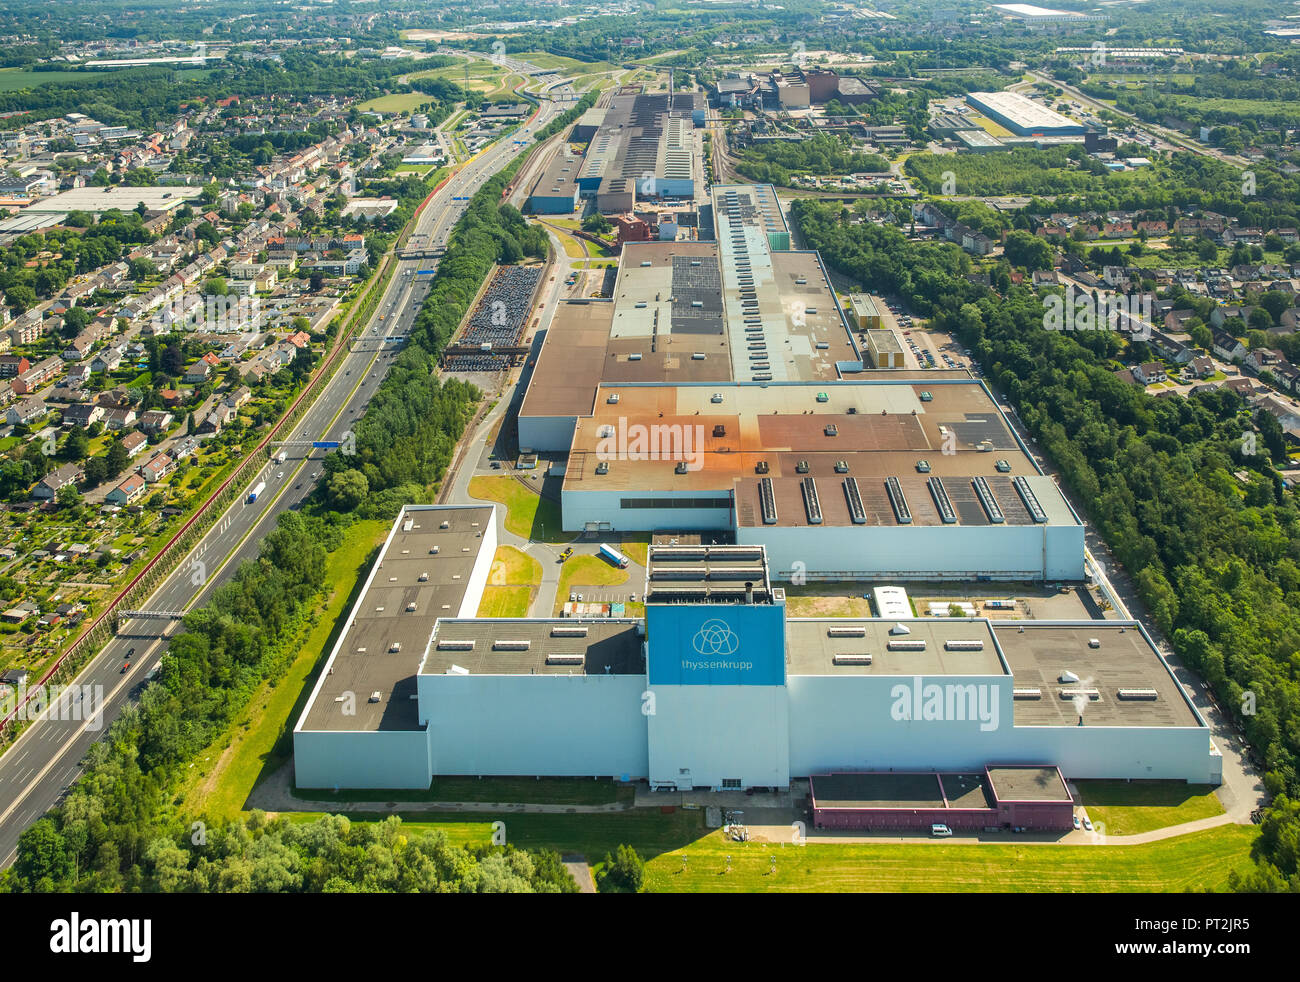 Thyssen Krupp Steel Europe AG, Bochum Plant, Steel Factory, Mining Industry, Heavy Industry, Wattenscheid, Bochum, Ruhr Area, North Rhine-Westphalia, Germany - Stock Image